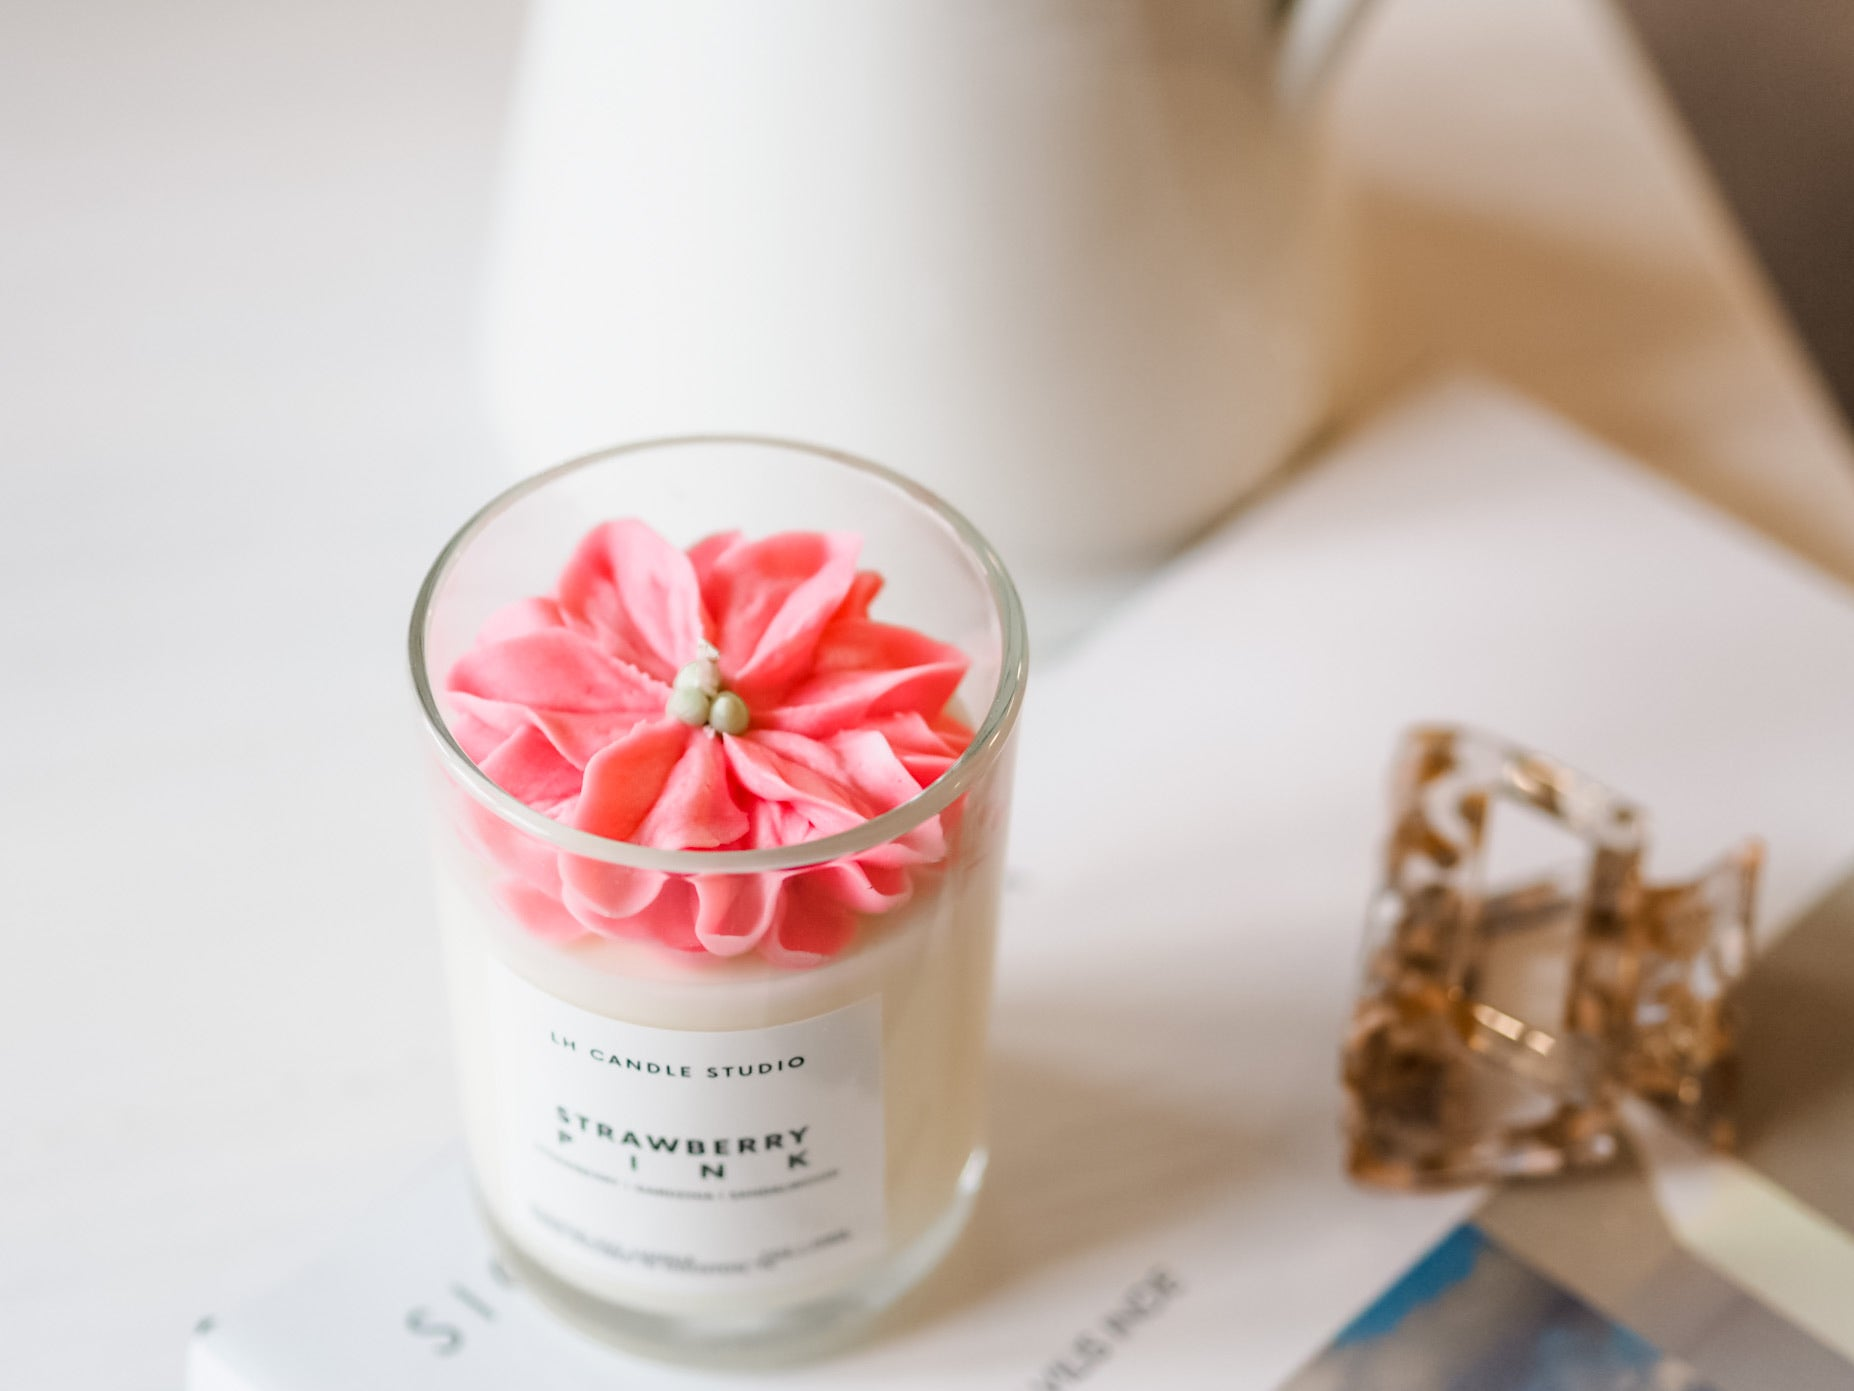 Strawberry pink Candle